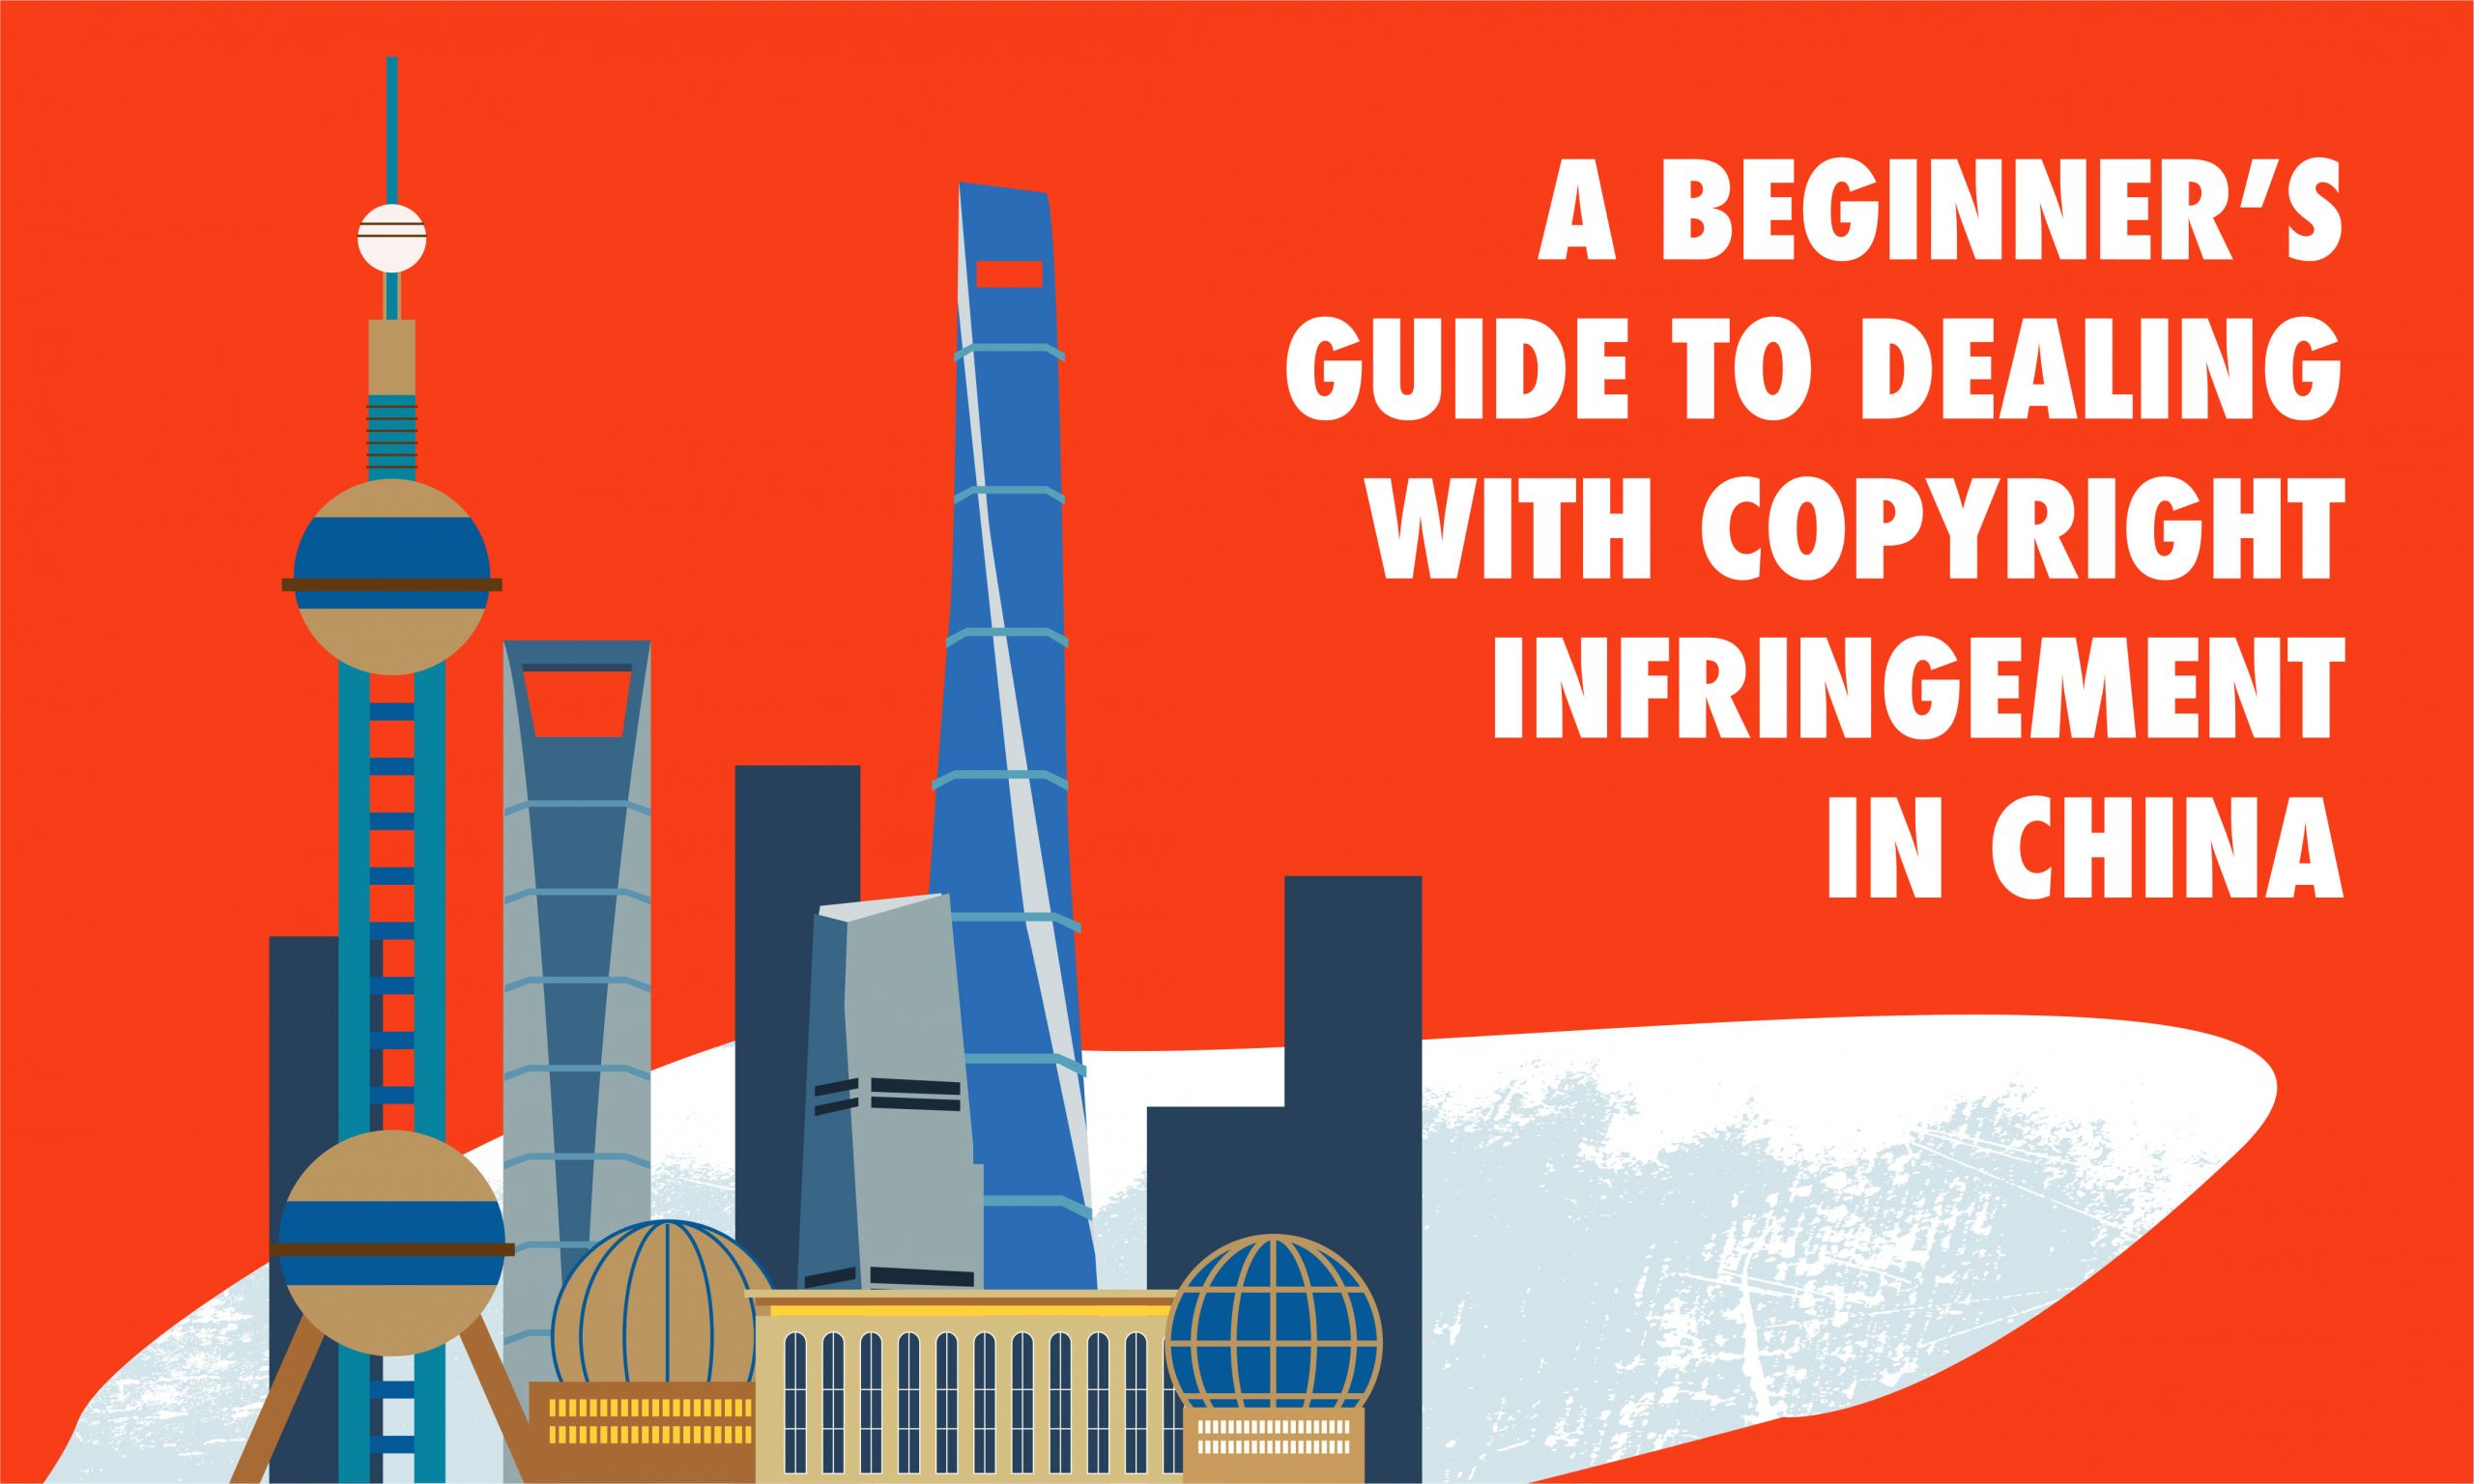 A Beginner's Guide to Dealing with Copyright Infringement in China